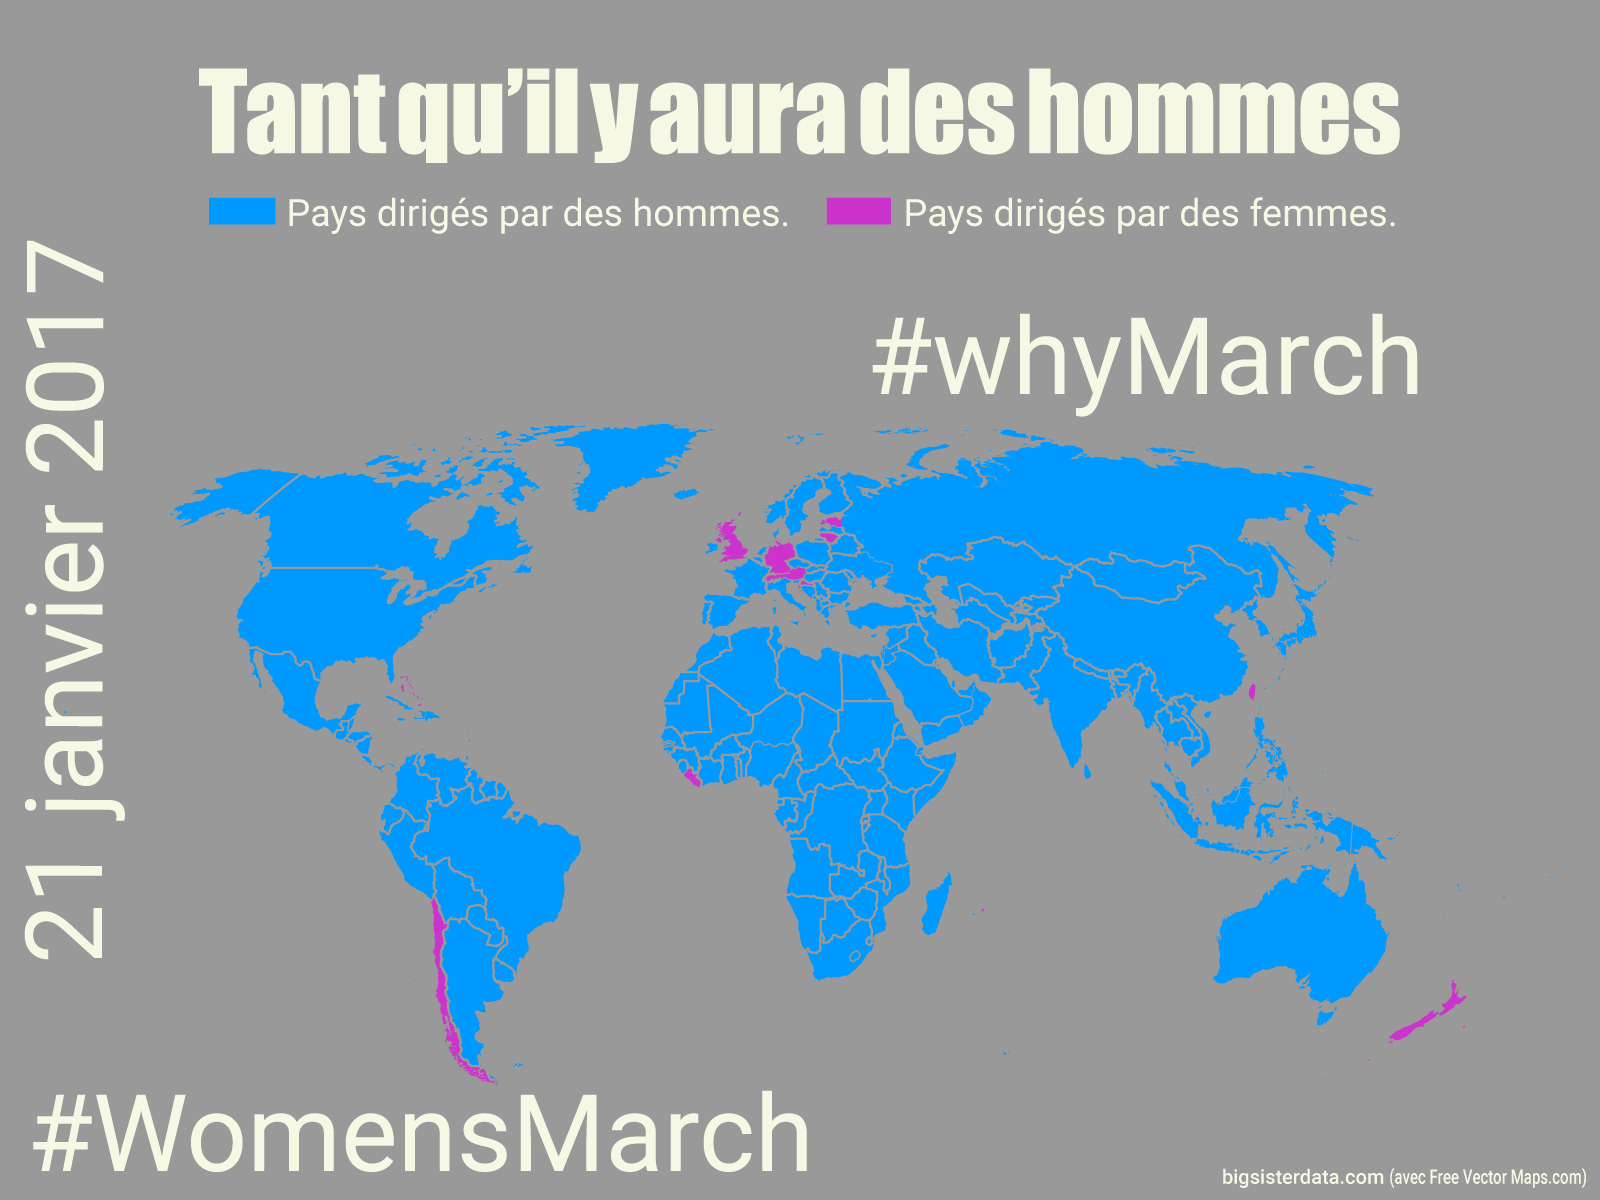 whyMarch